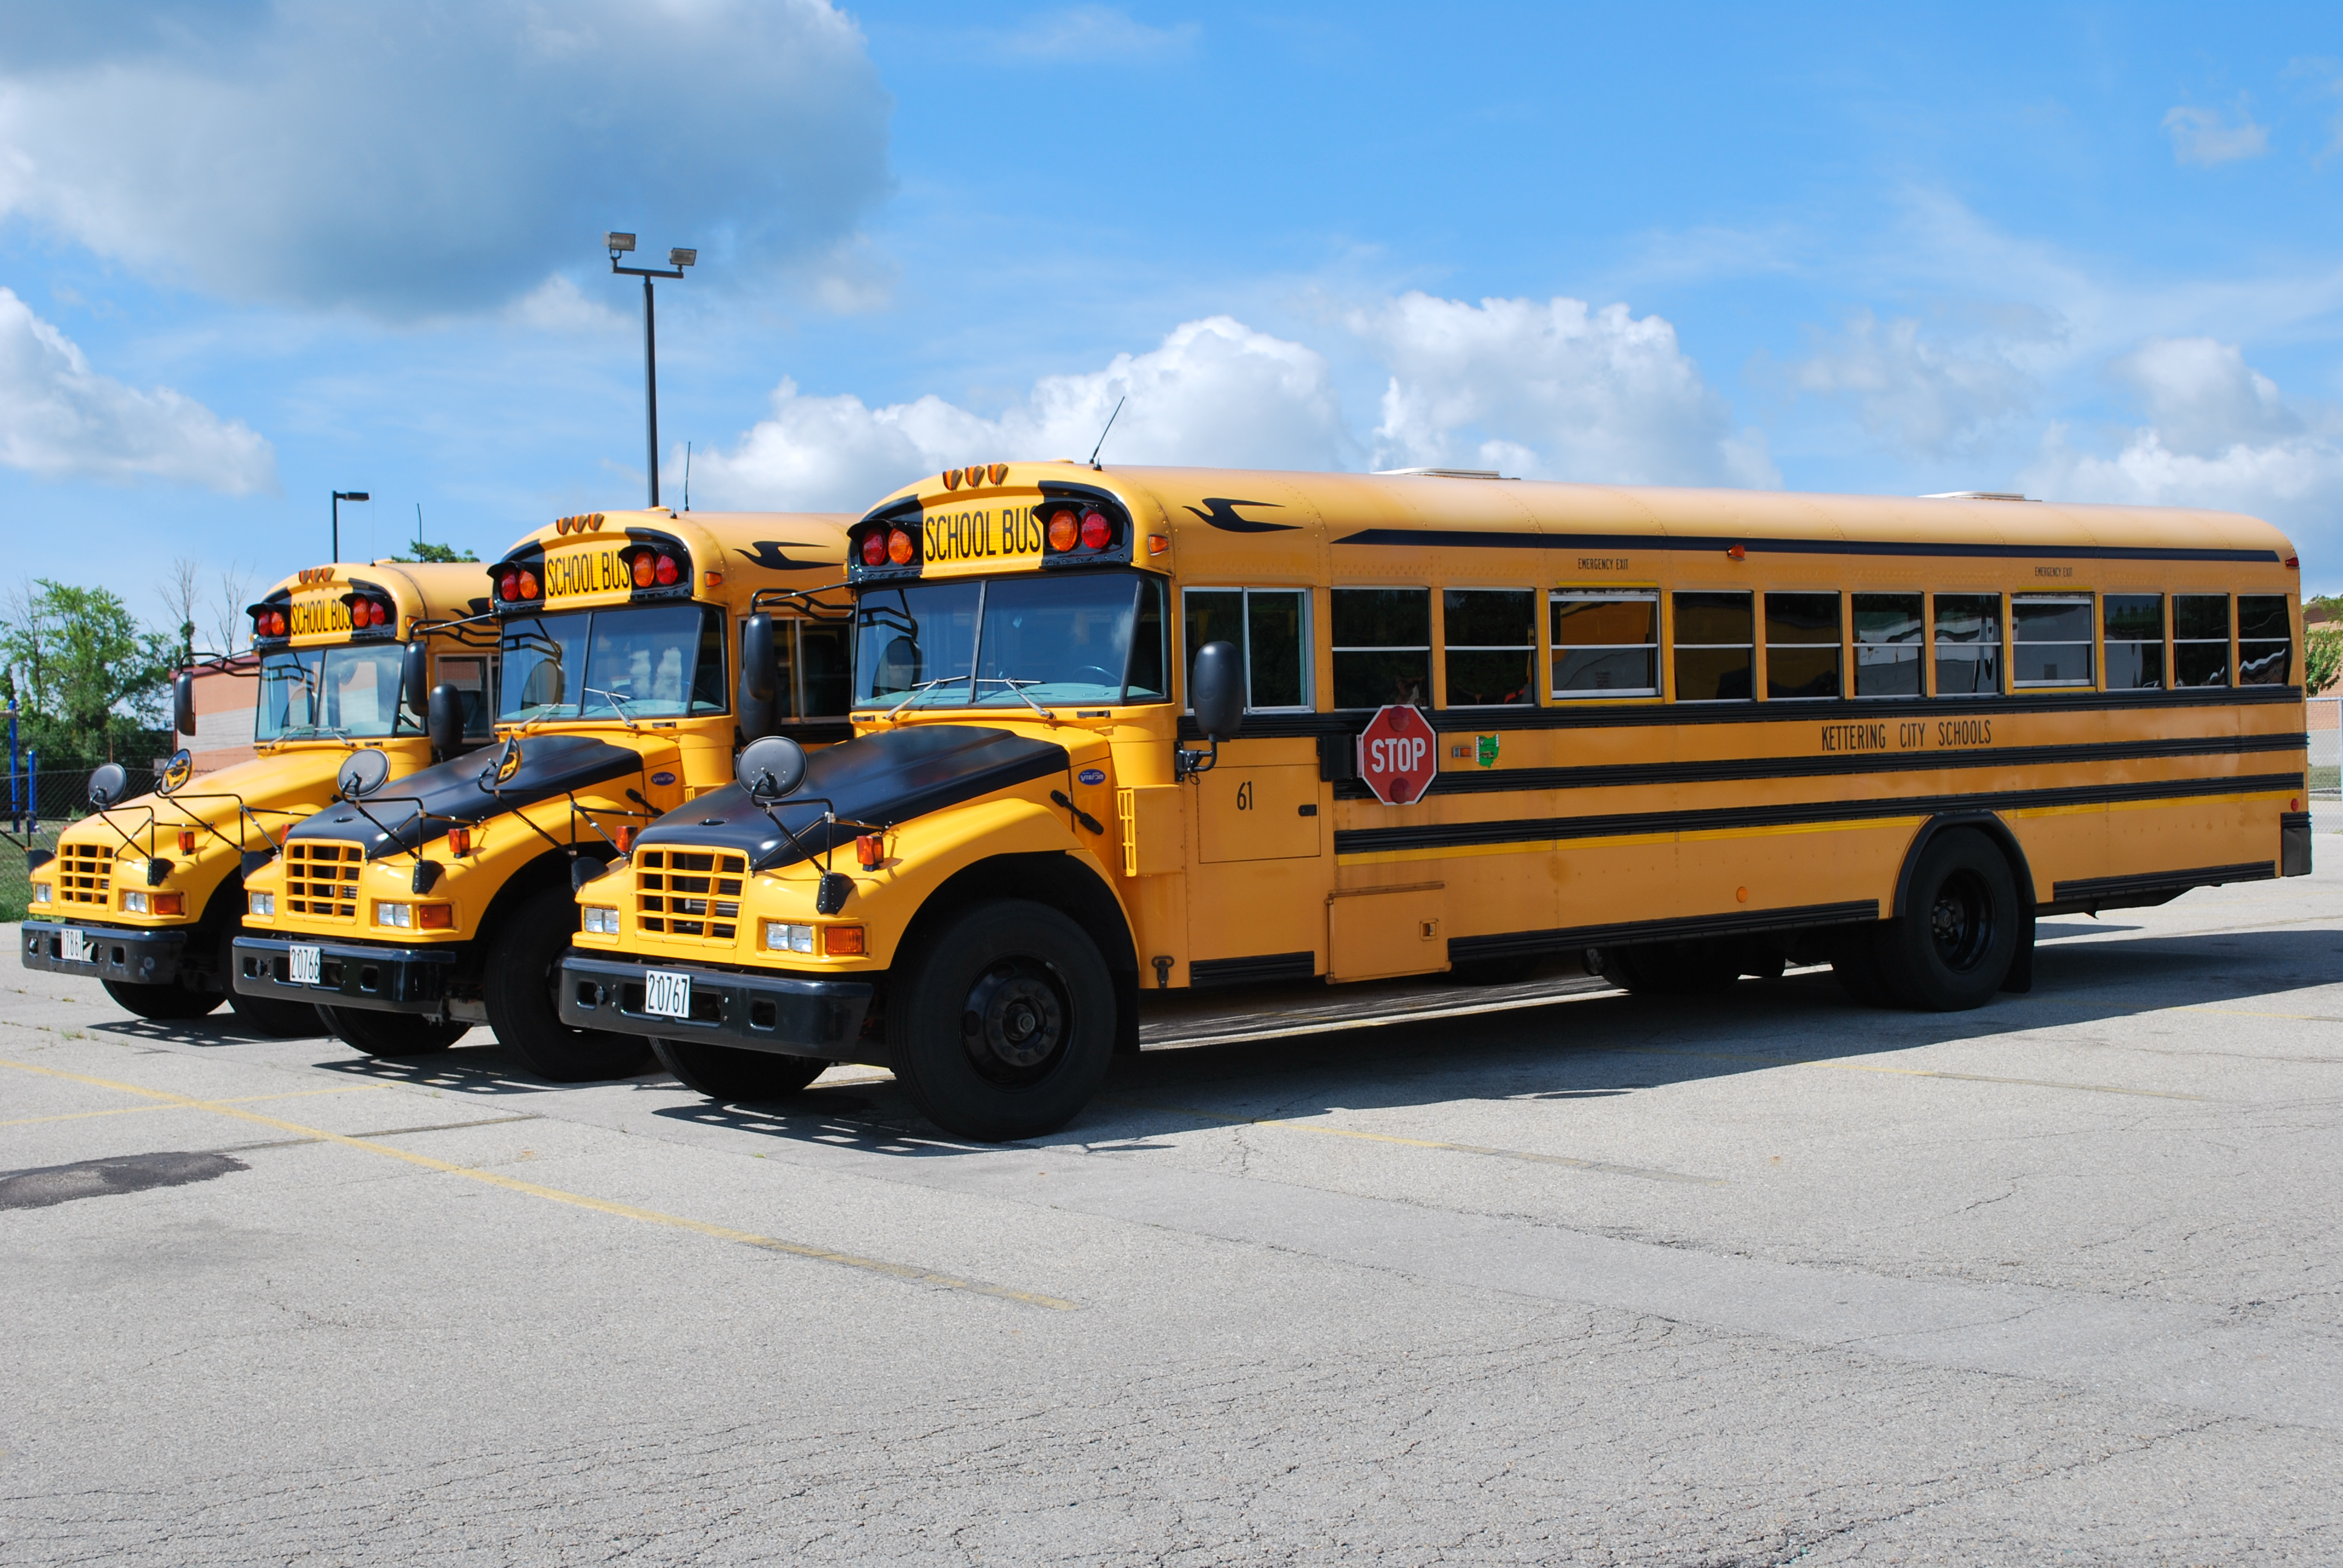 Junior/Seniors are asked to OPT-IN to School Bus Transportation